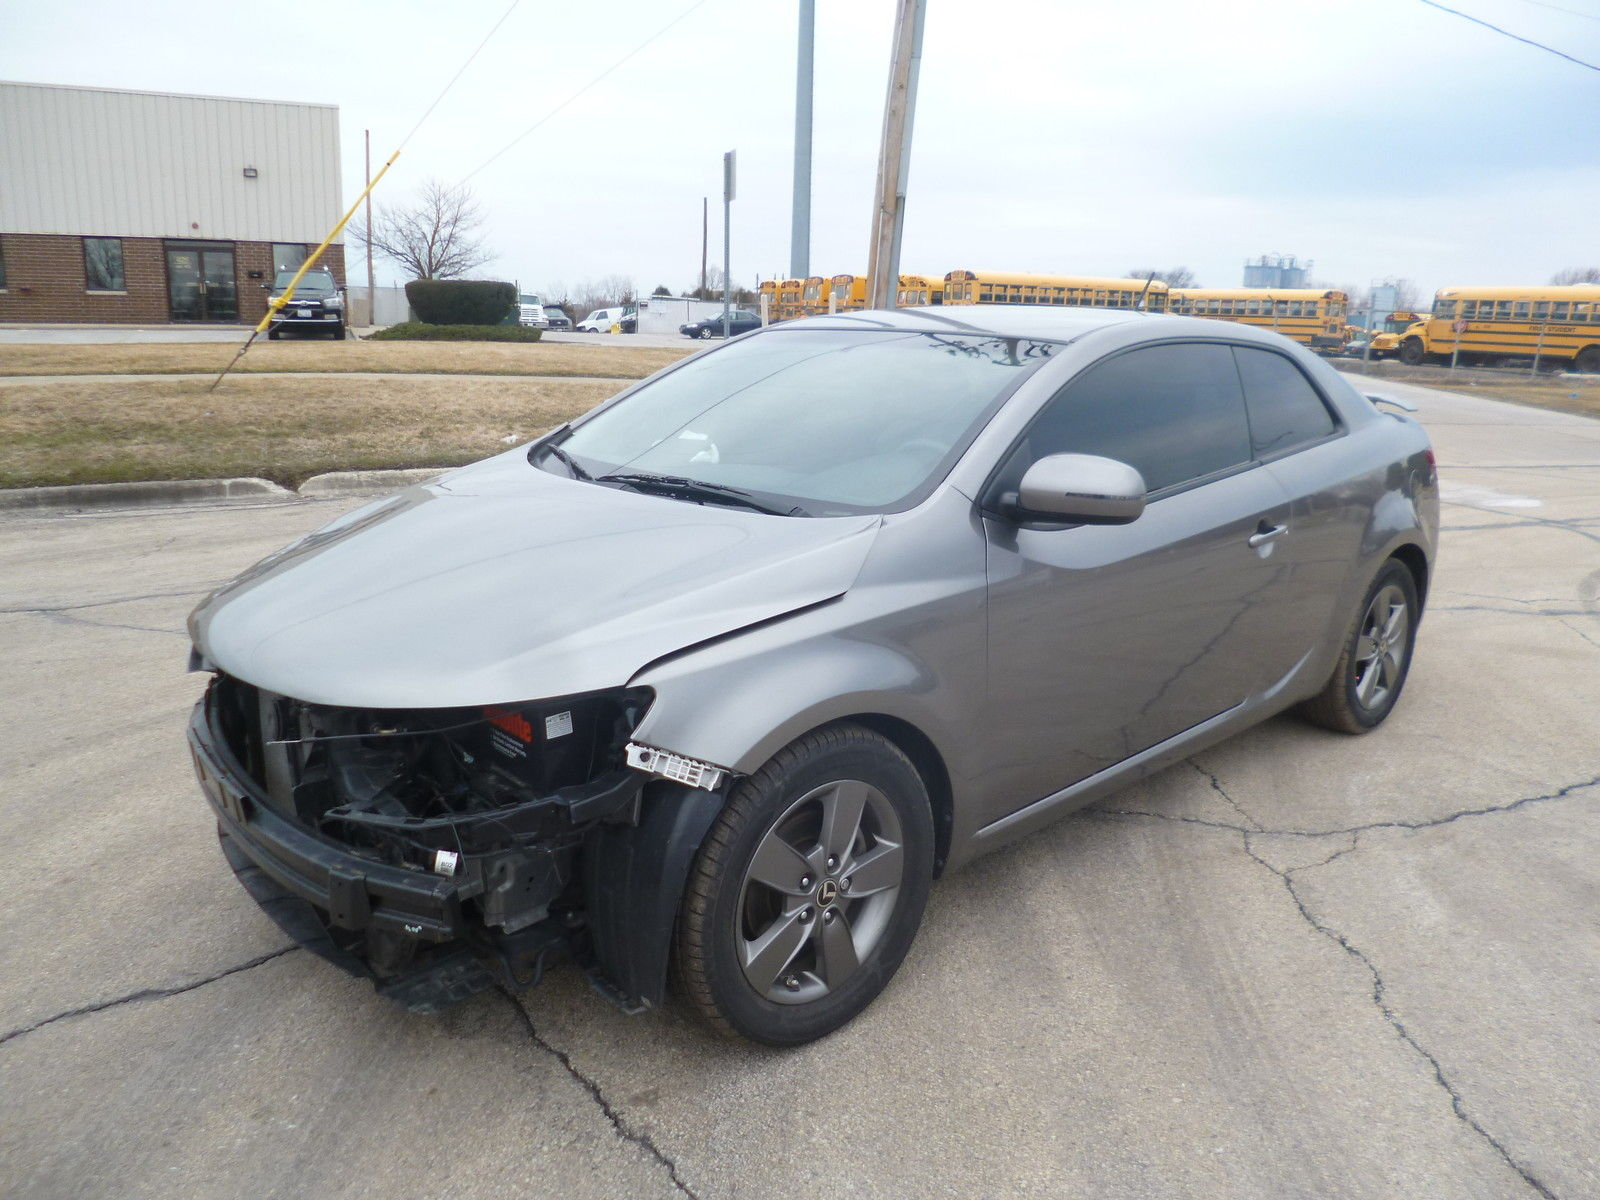 2013 Kia Optima For Sale >> 2012 Kia Forte Koup EX coupe Rebuildable Damaged Salvage for sale